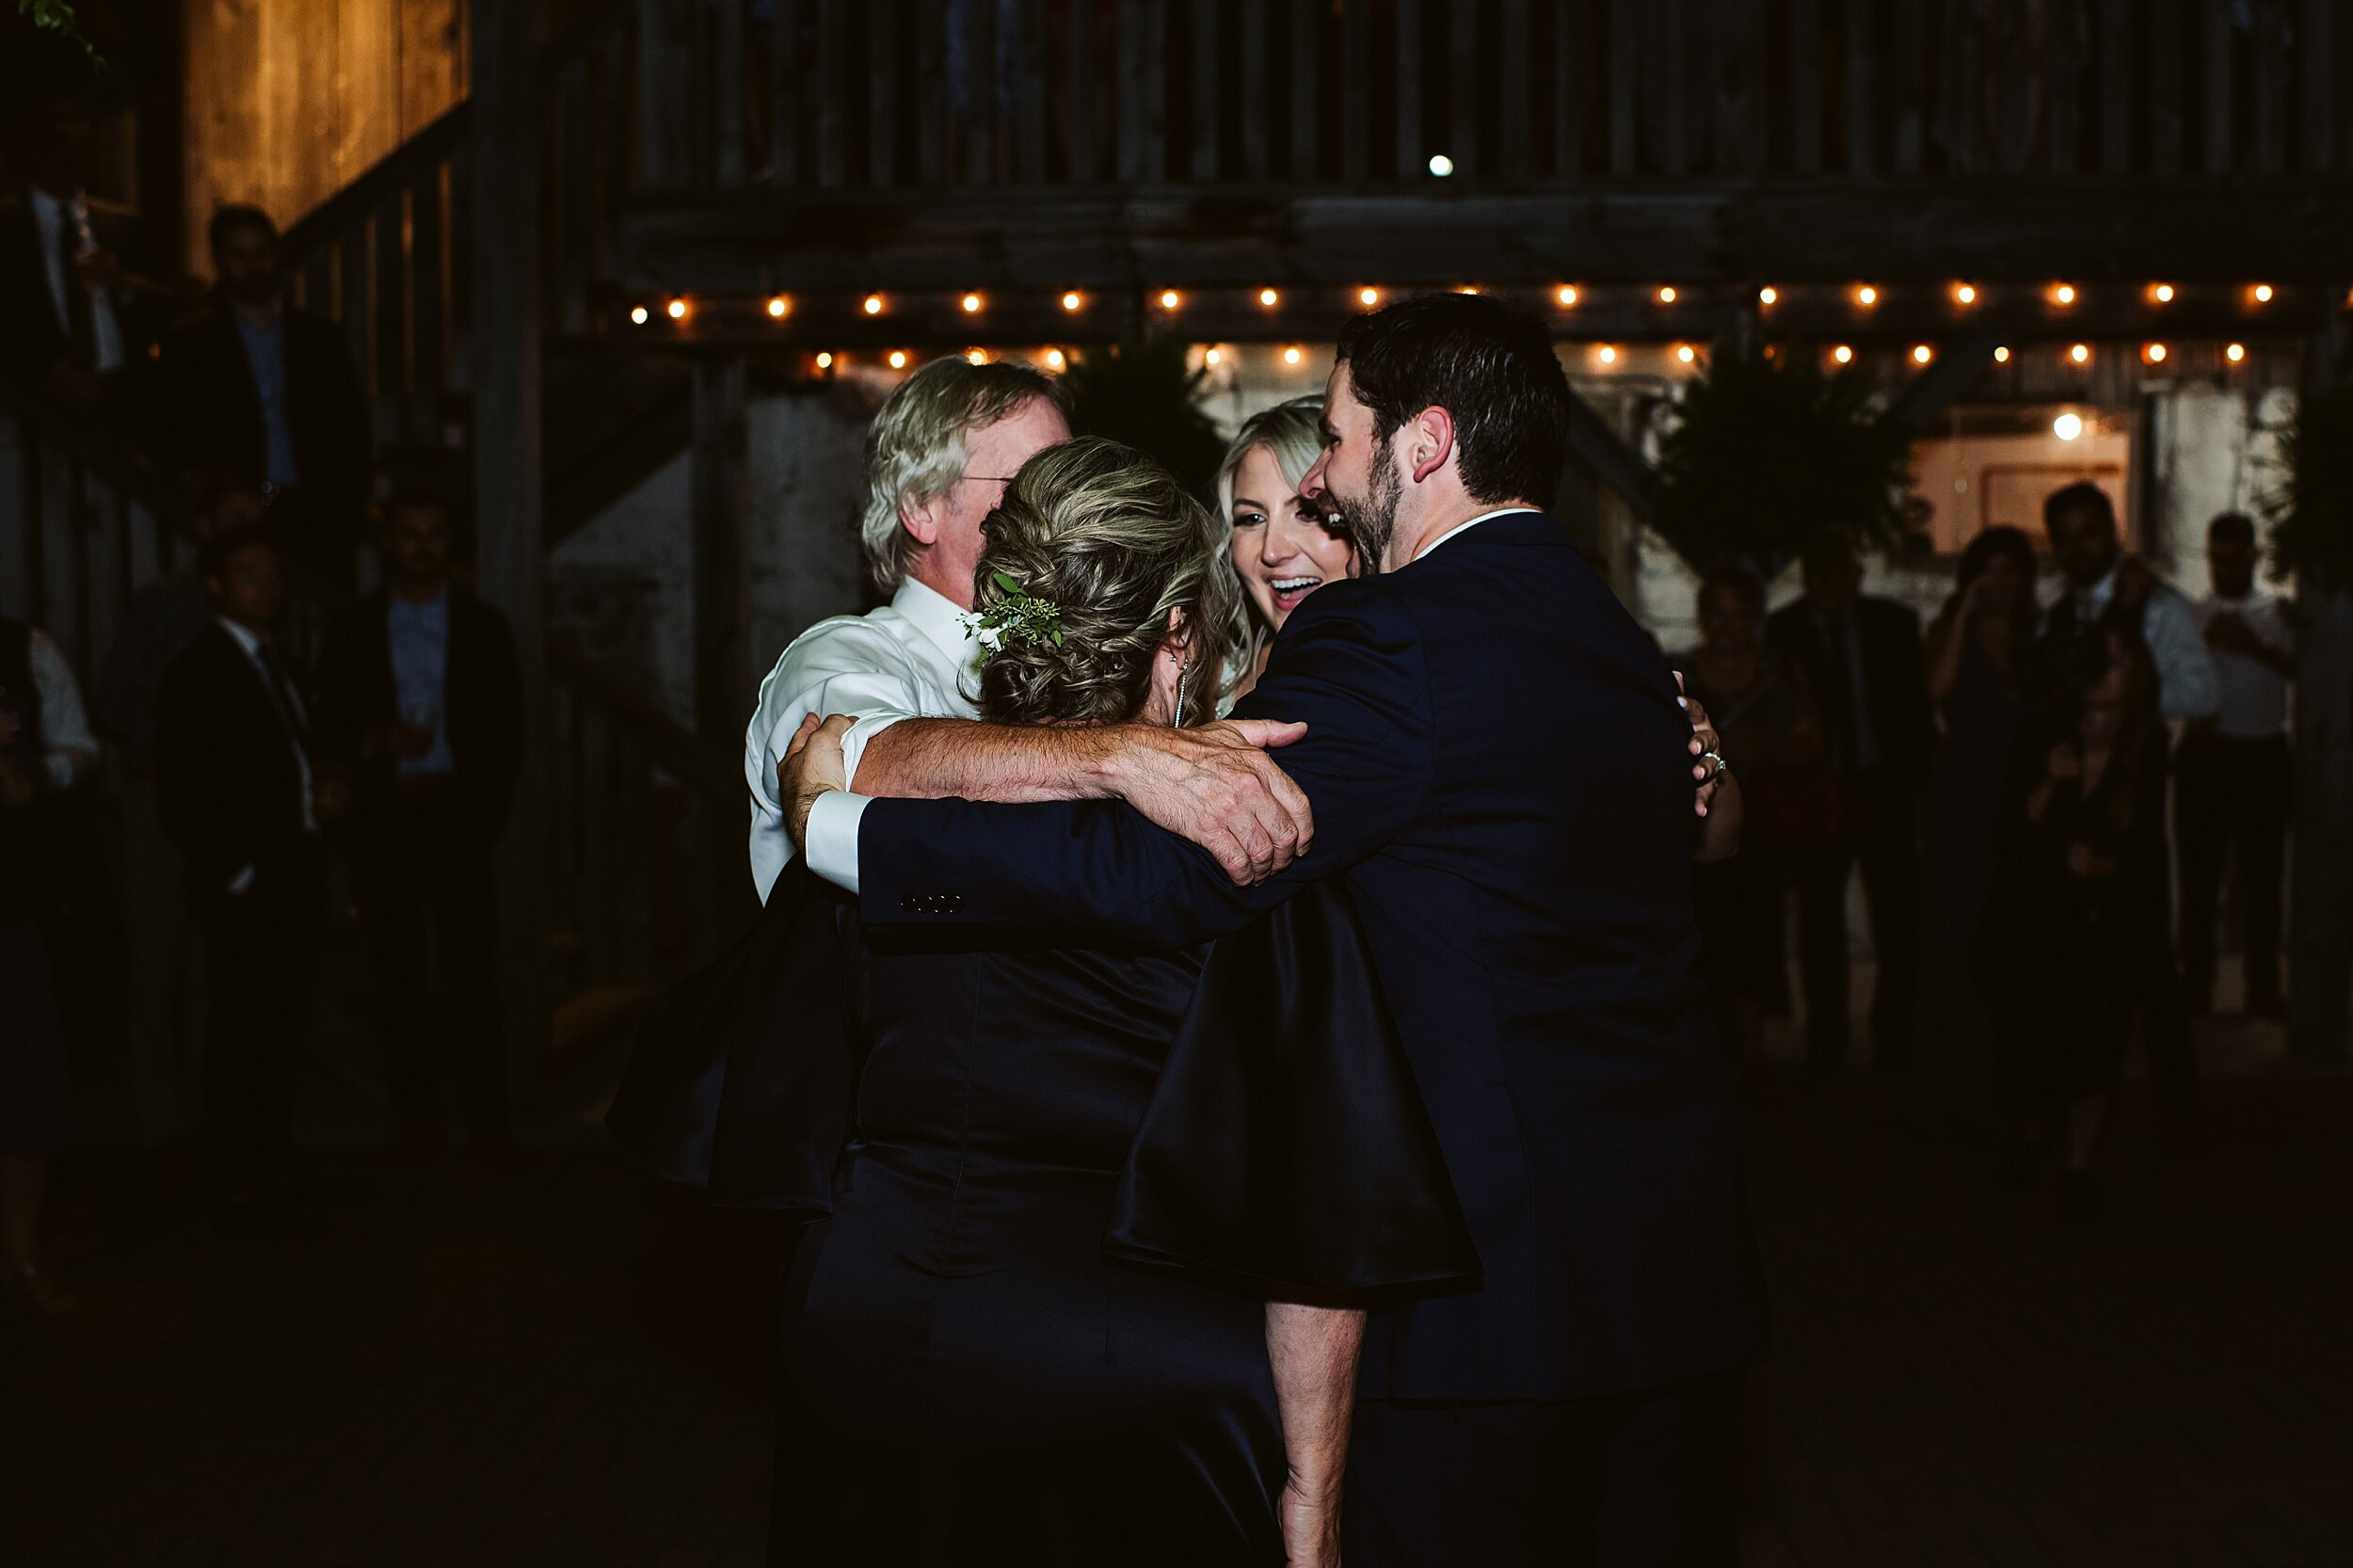 Belcroft-estates-barn-wedding-toronto-photographers_0074.jpg